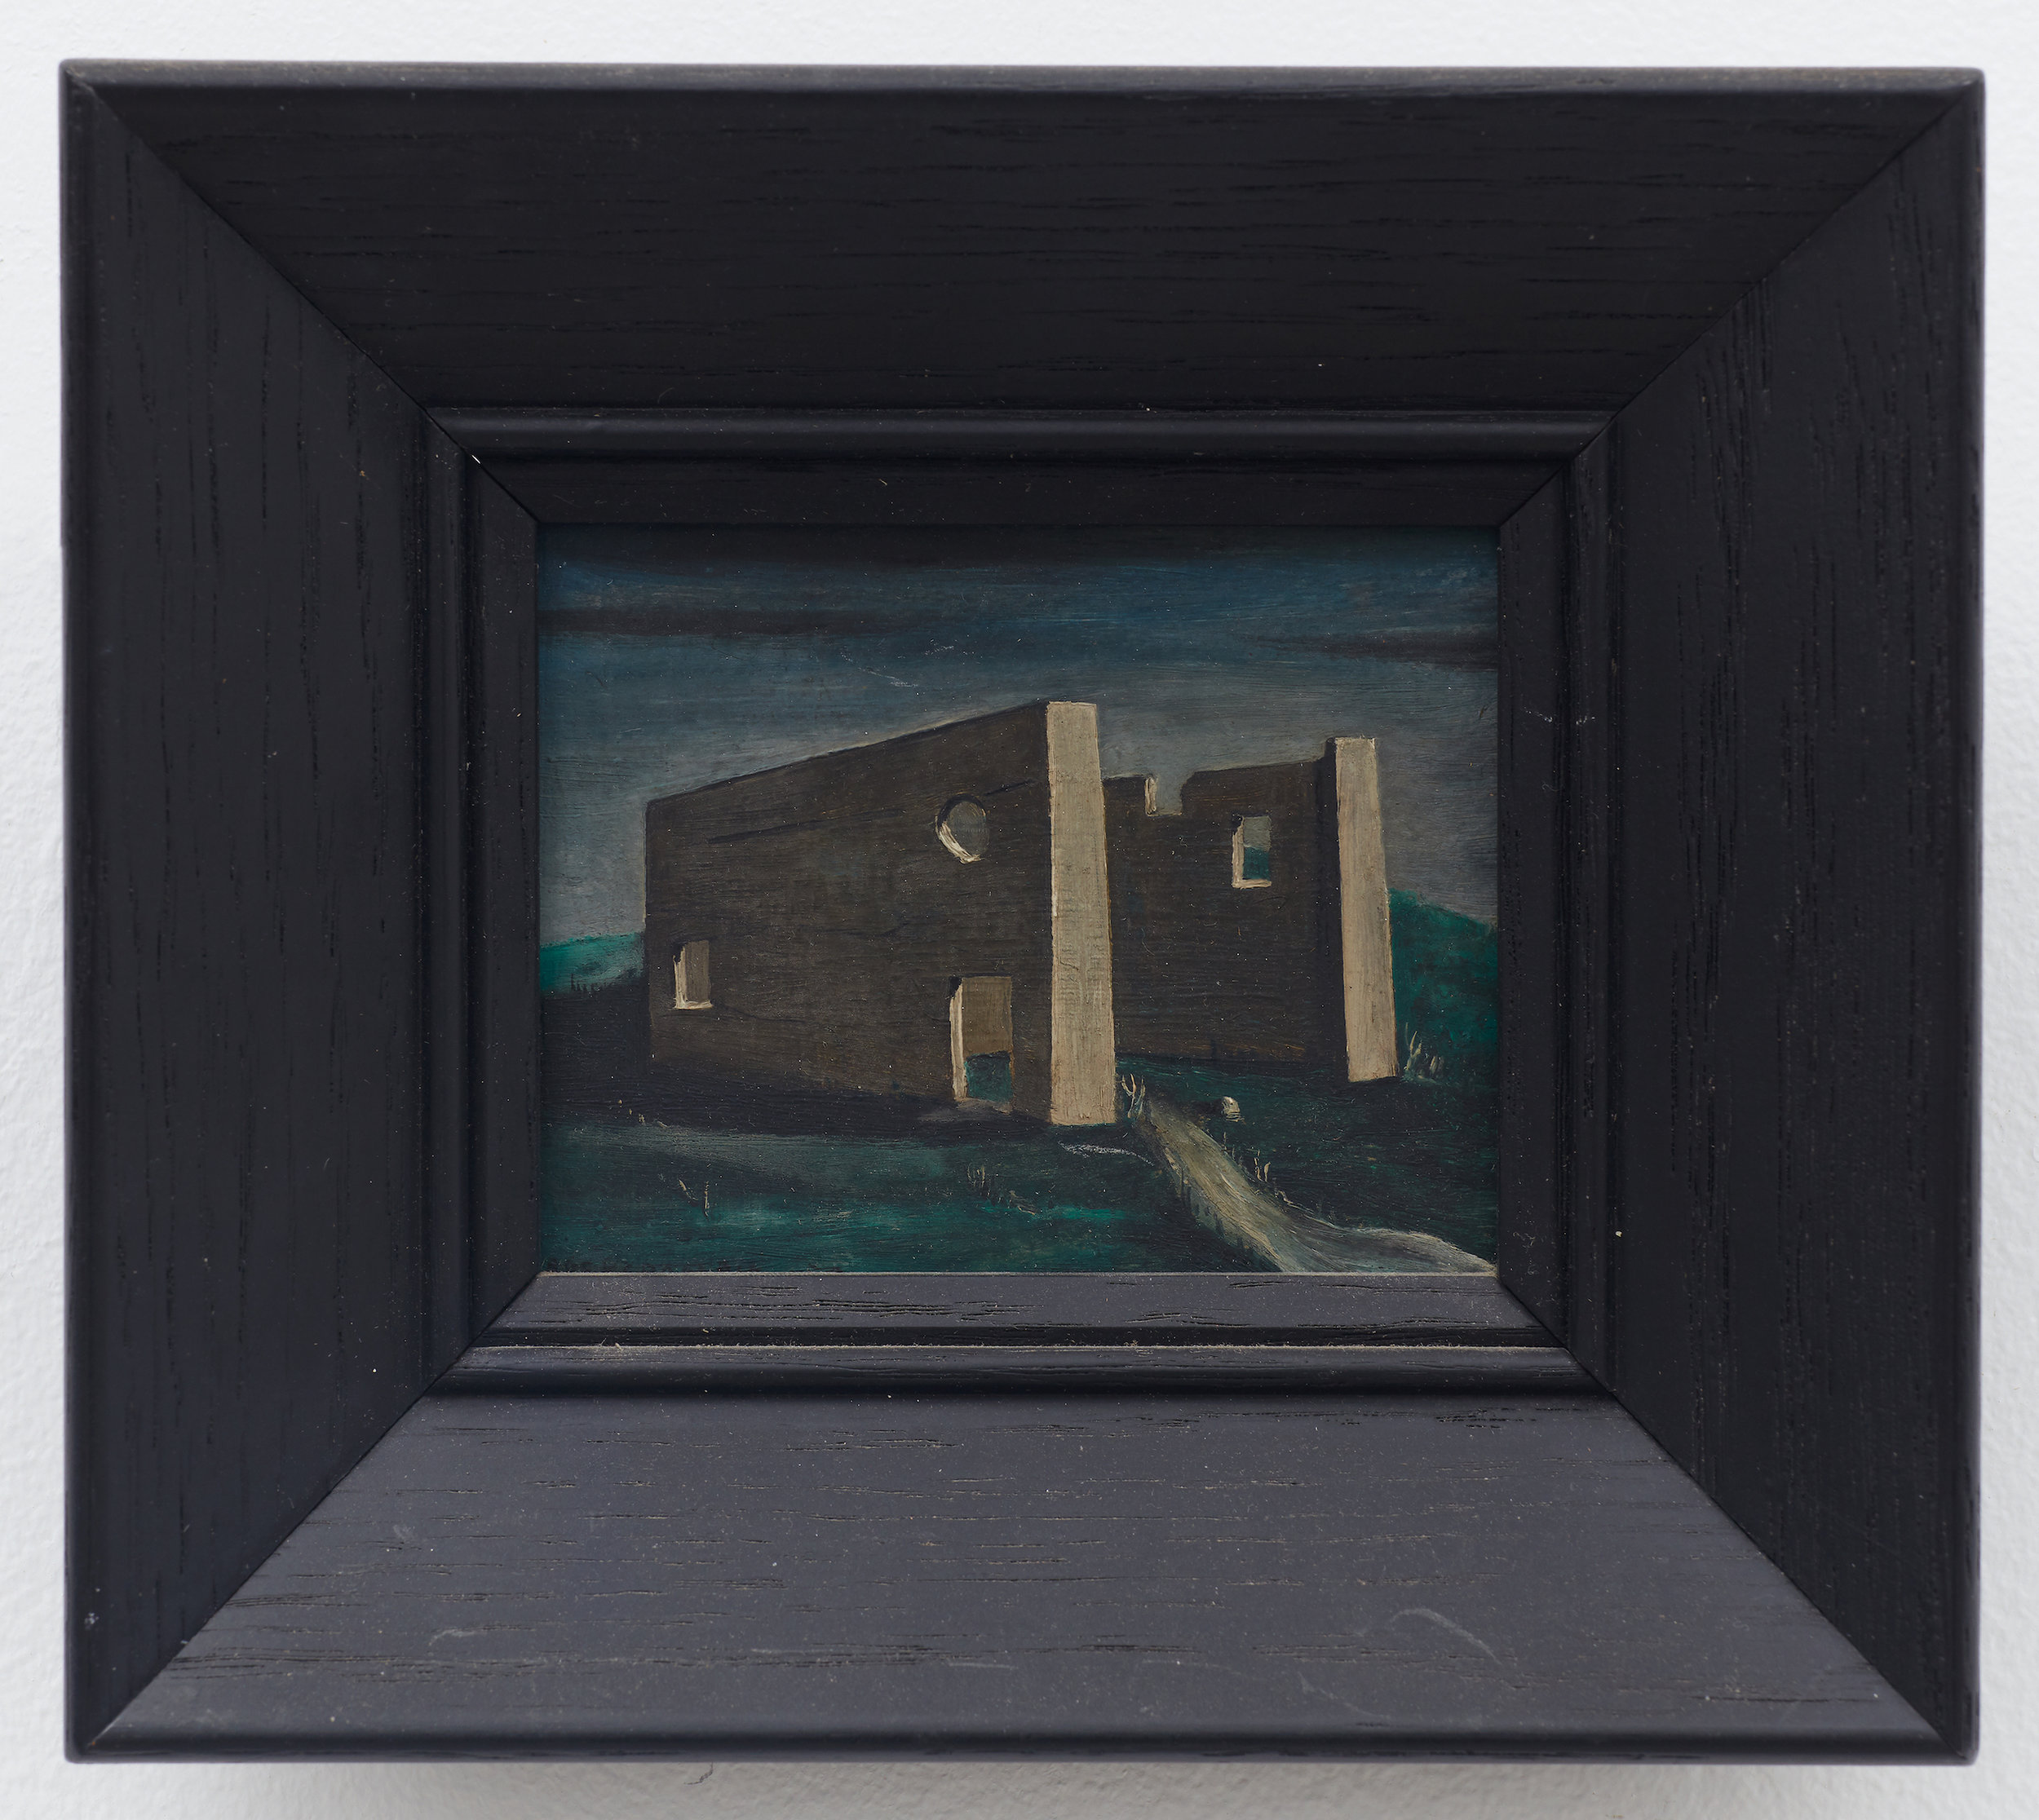 Untitled (Slaughterhouse at Aledo) , 1934, Oil on masonite. 3 1/2 × 4 inches (unframed); 6 × 7 inches (framed), Illinois State Museum, Illinois Legacy Collection, Gift of the Gertrude Abercrombie Trust. Photo: Illinois State Museum.